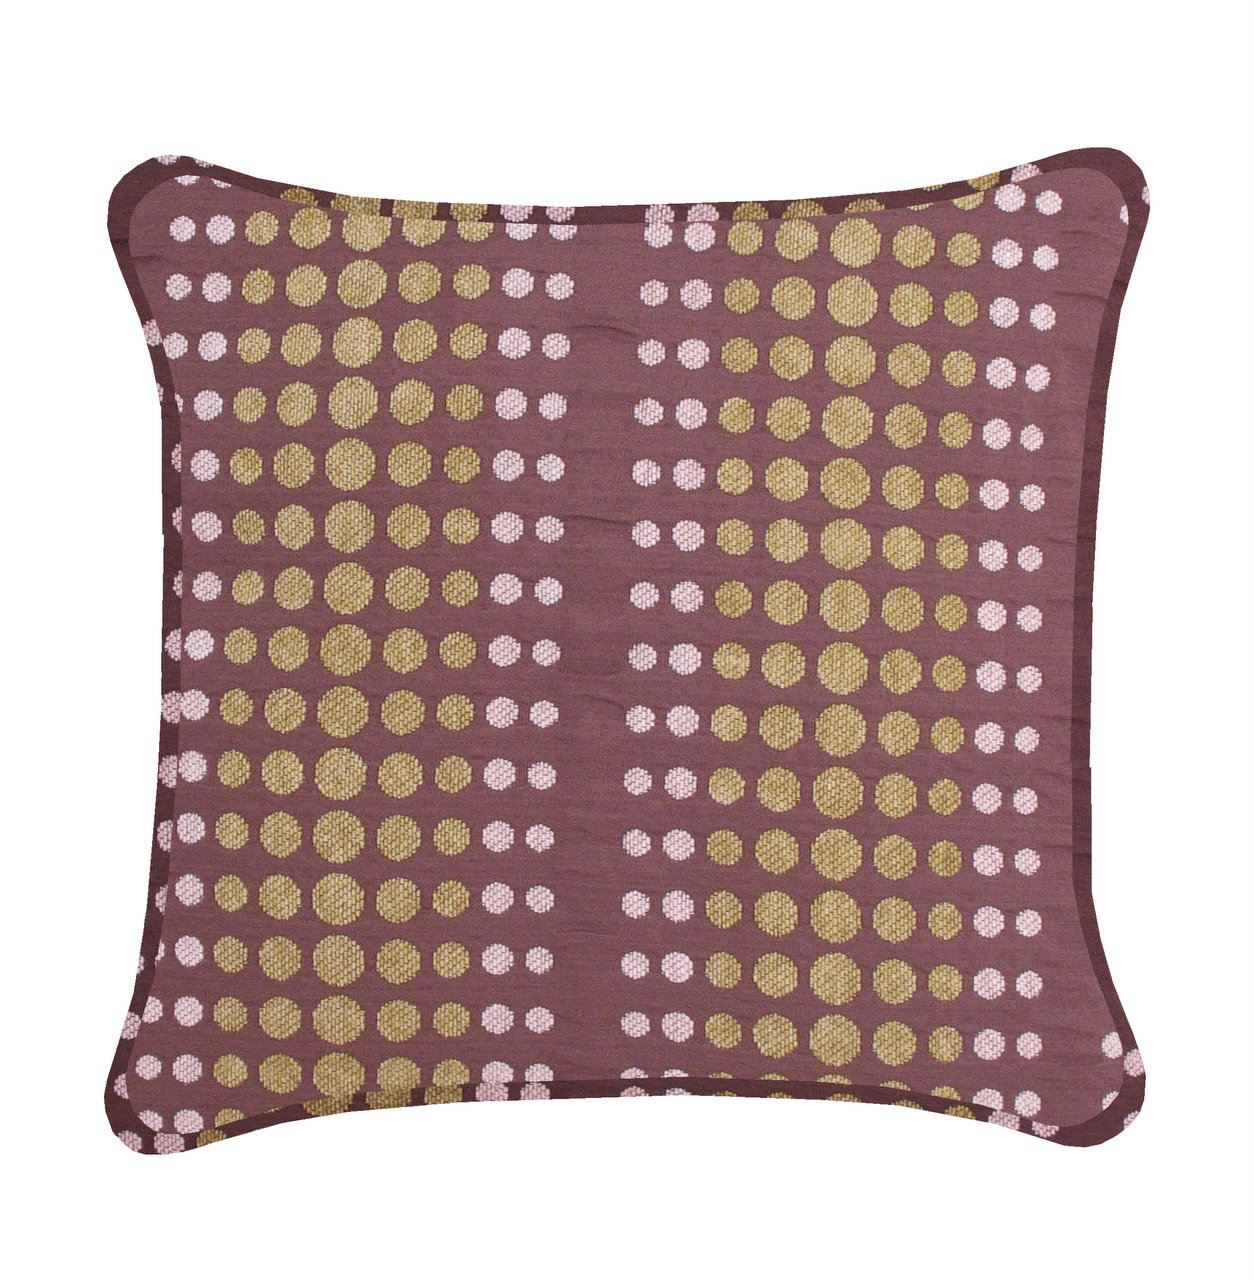 Brown Cushion For Bed Sofa Couch Moss Green Dots Retro Style